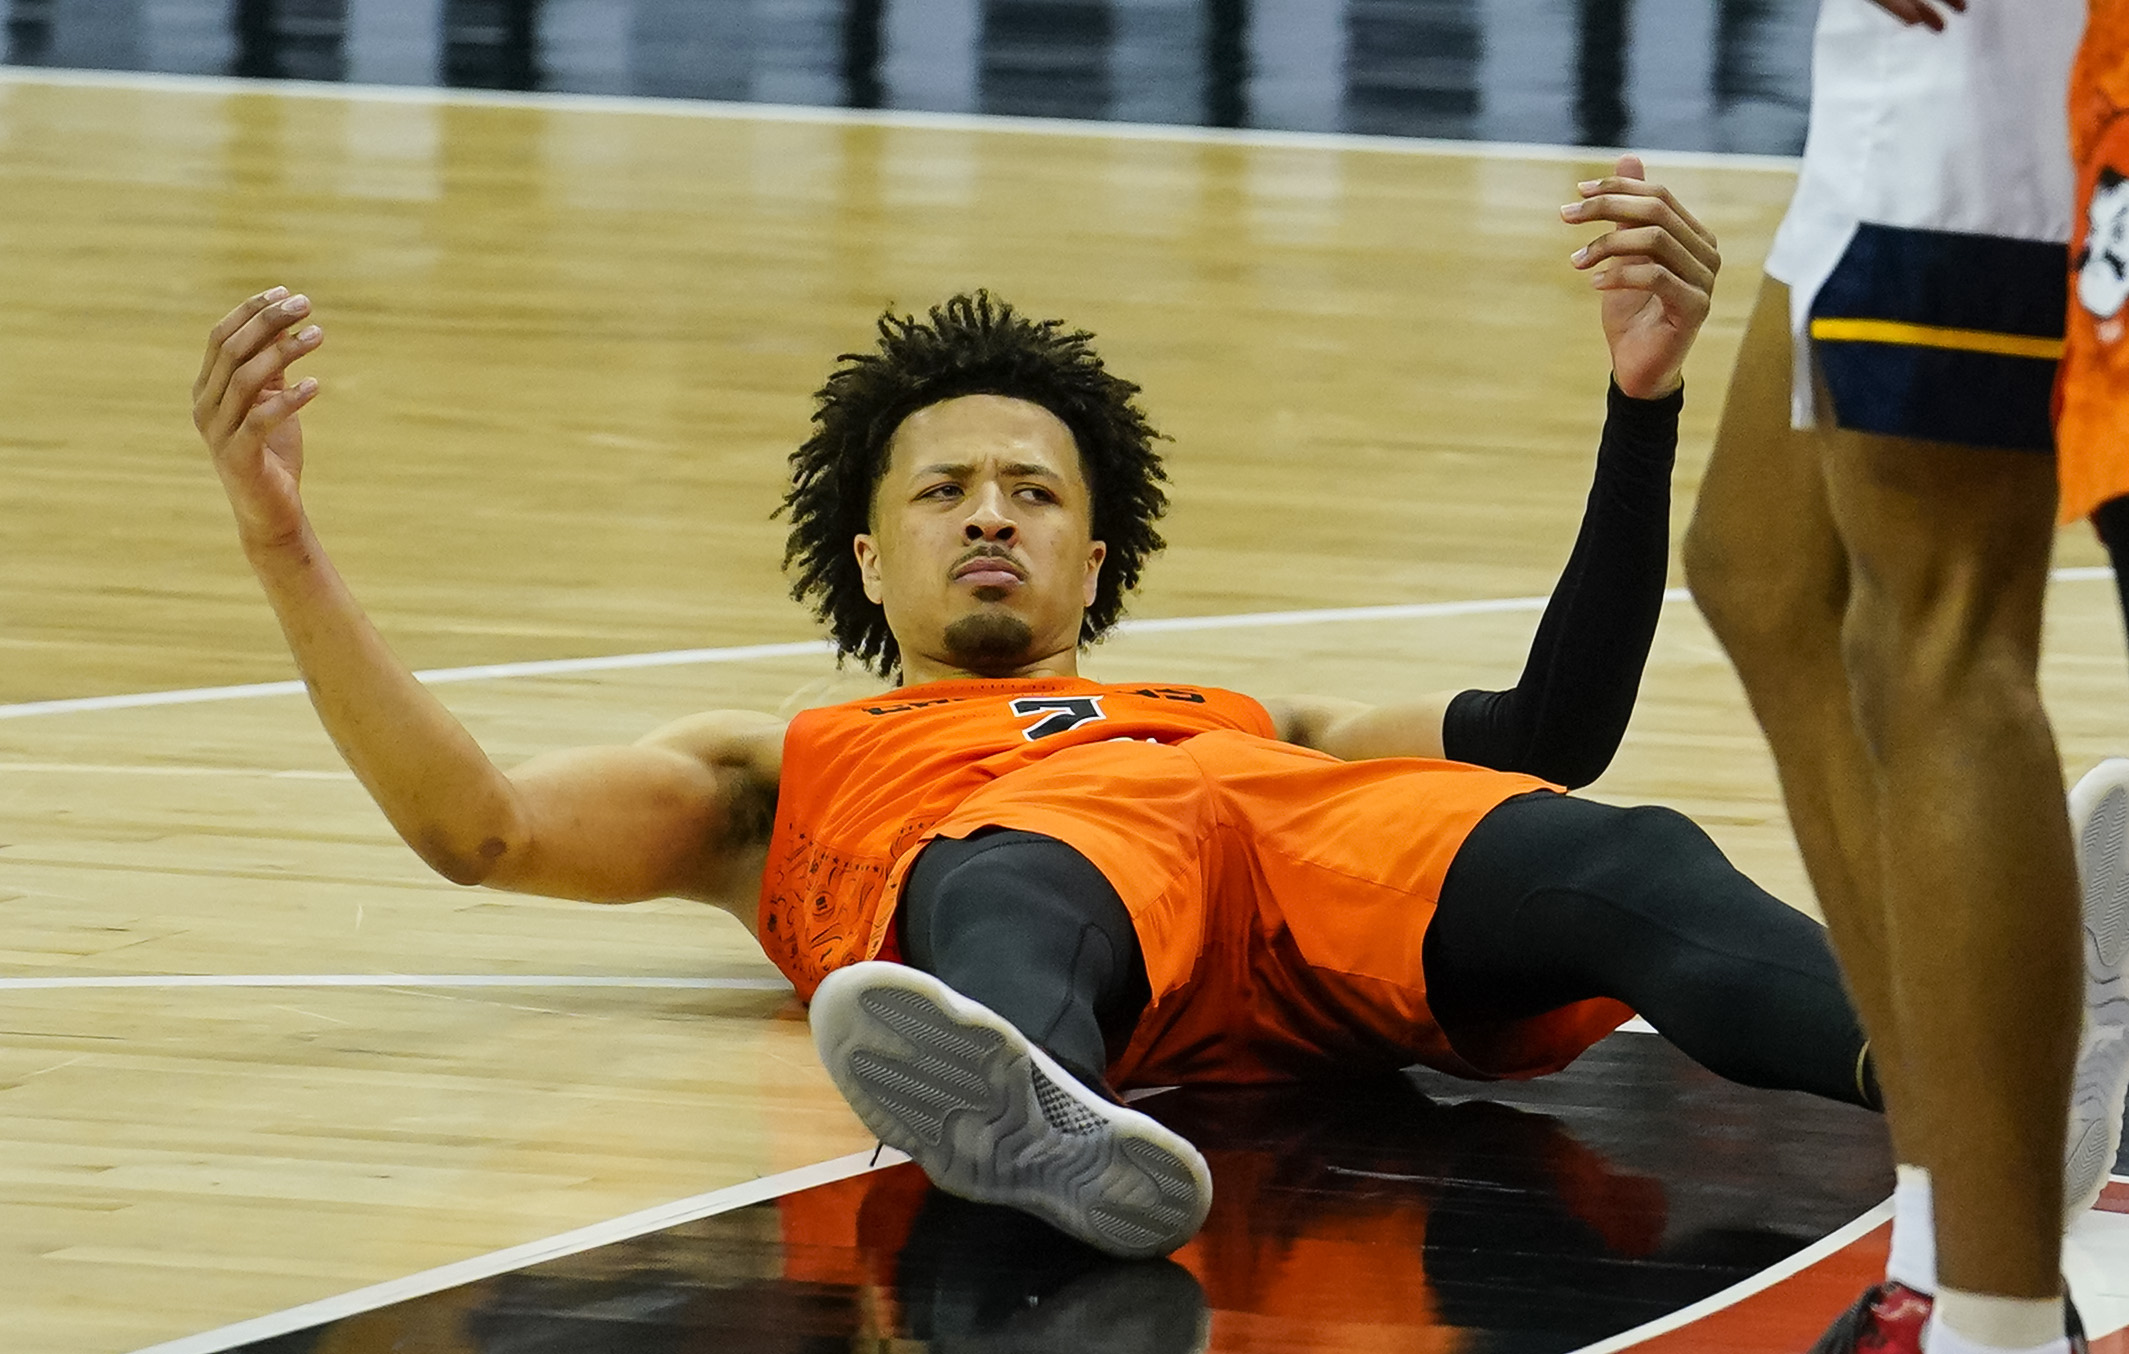 Oklahoma State Cowboys guard Cade Cunningham reacts after a play against the West Virginia Mountaineers during the second half at T-Mobile Center.